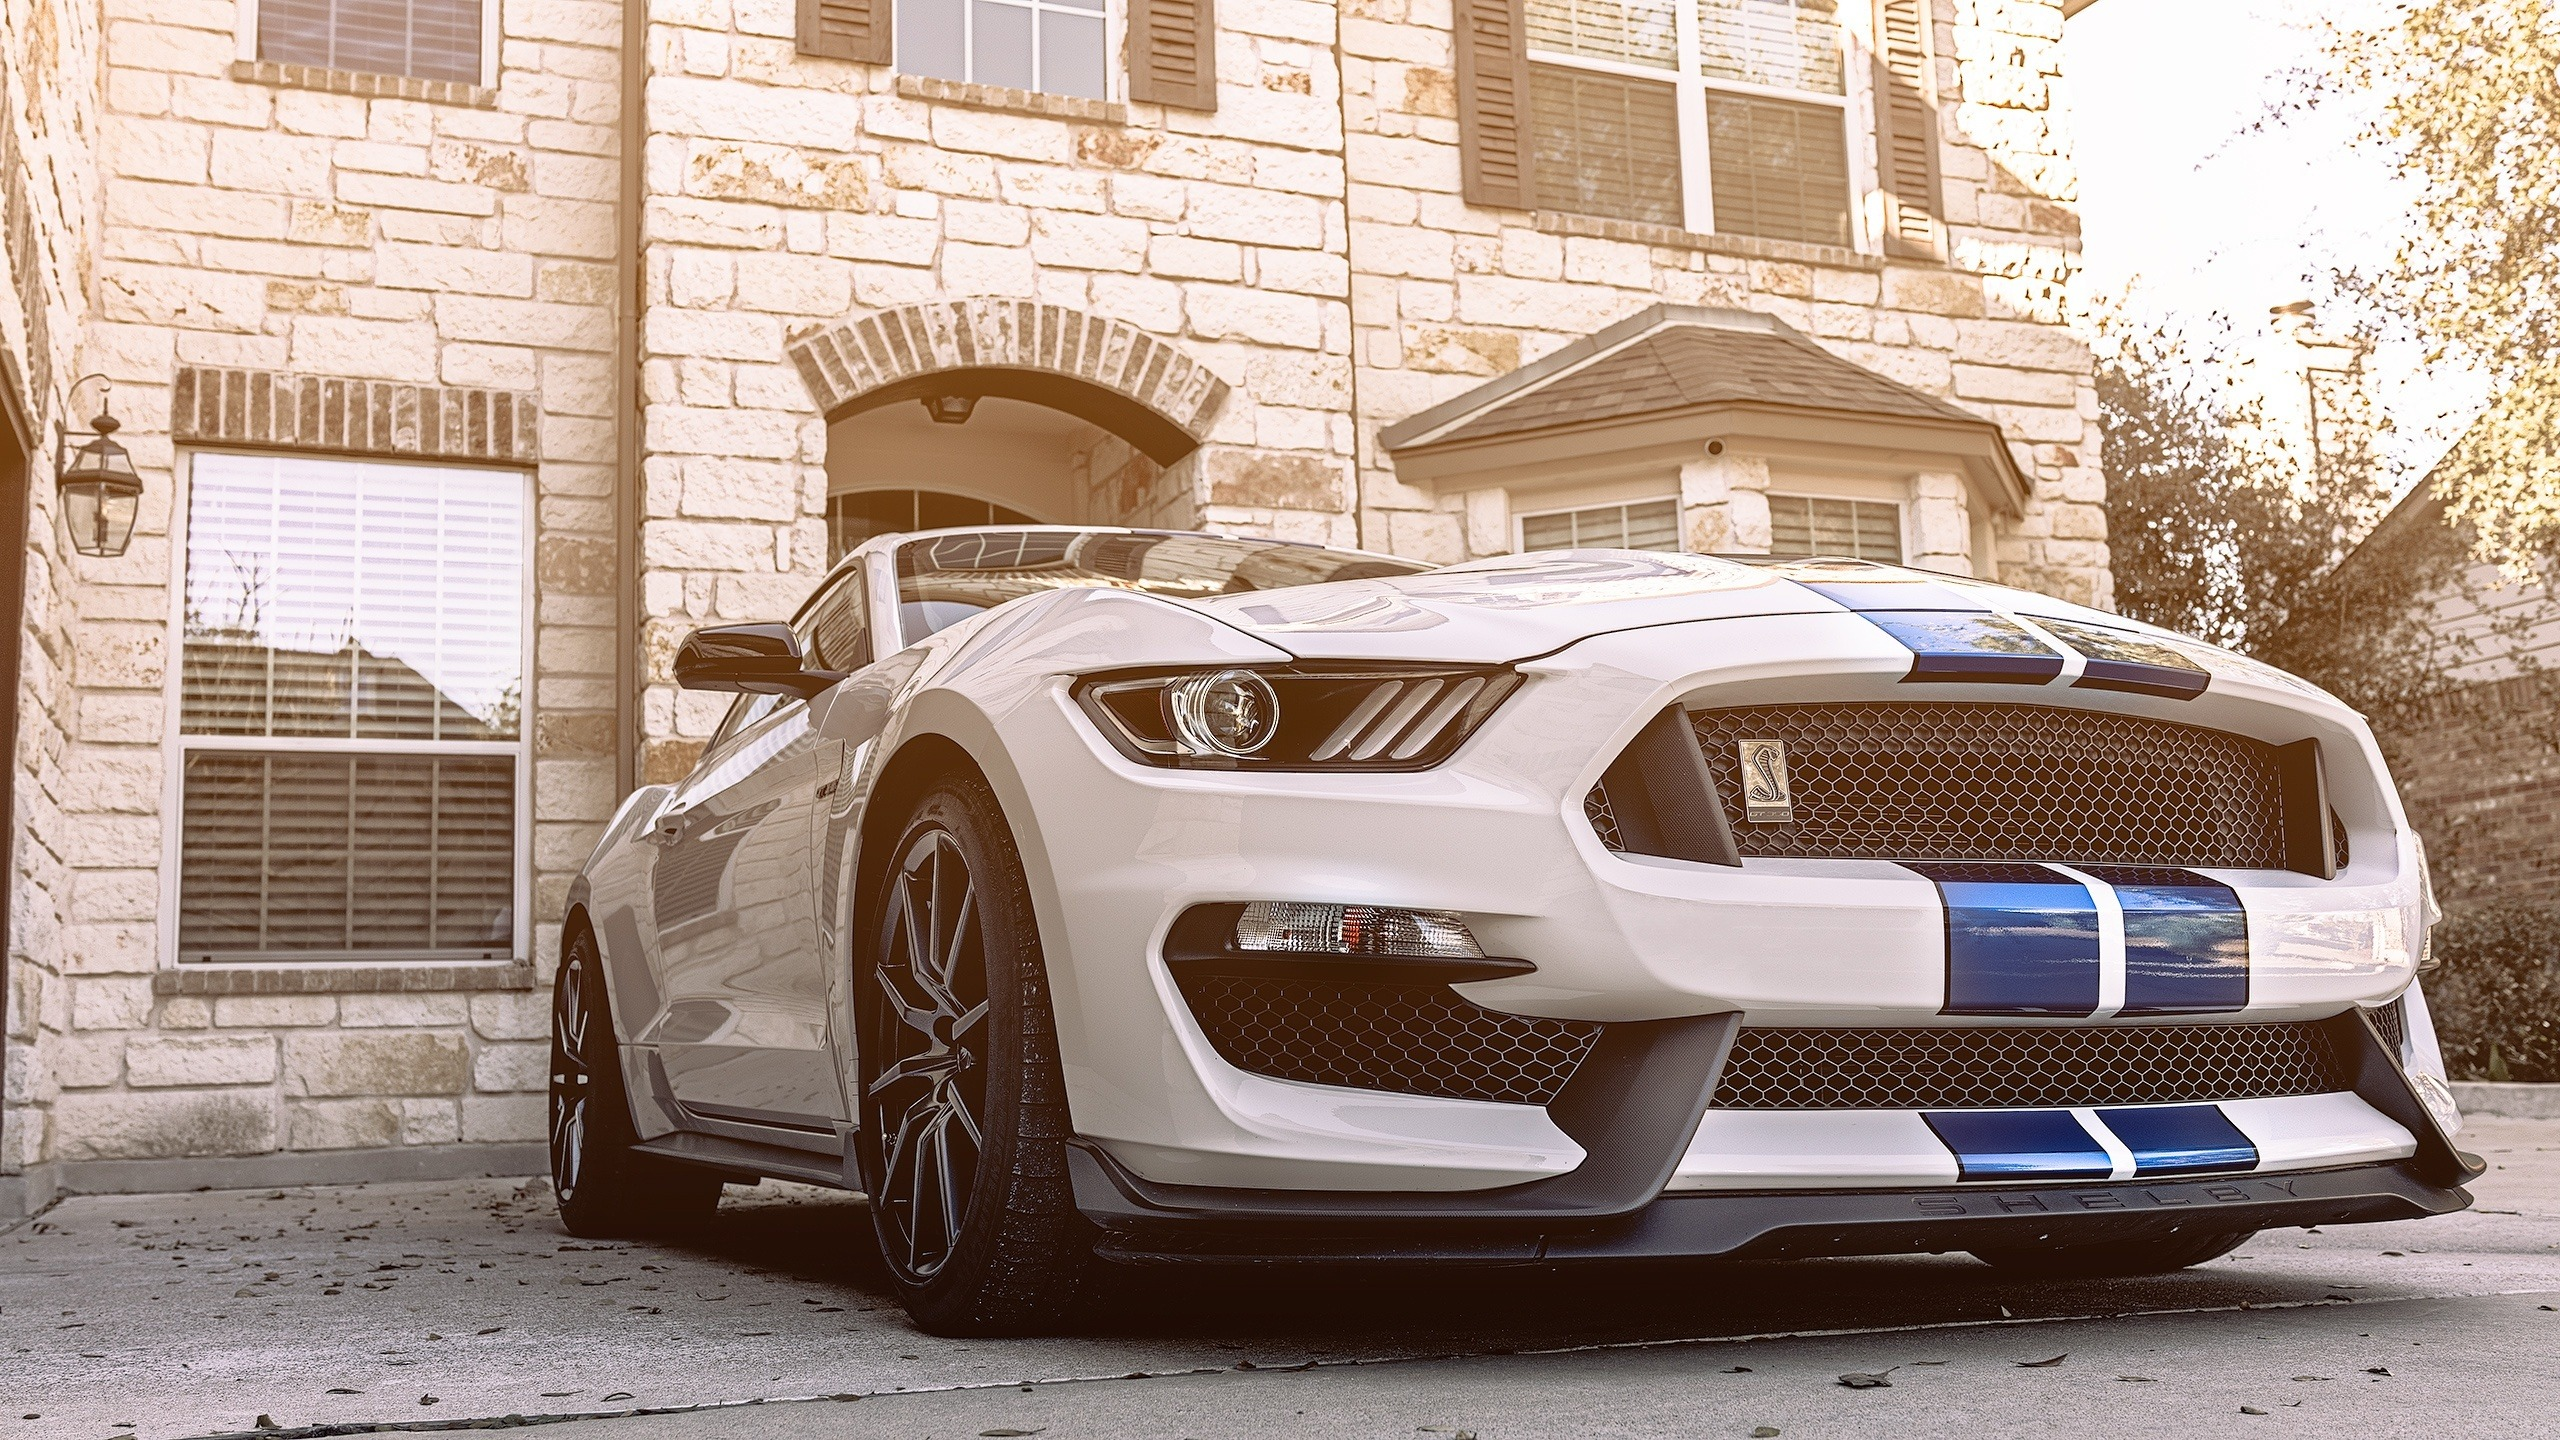 Download 2560x1440 Wallpaper 2018 Ford Mustang Shelby Gt350 Sports Car Dual Wide Widescreen 16 9 Widescreen 2560x1440 Hd Image Background 2548